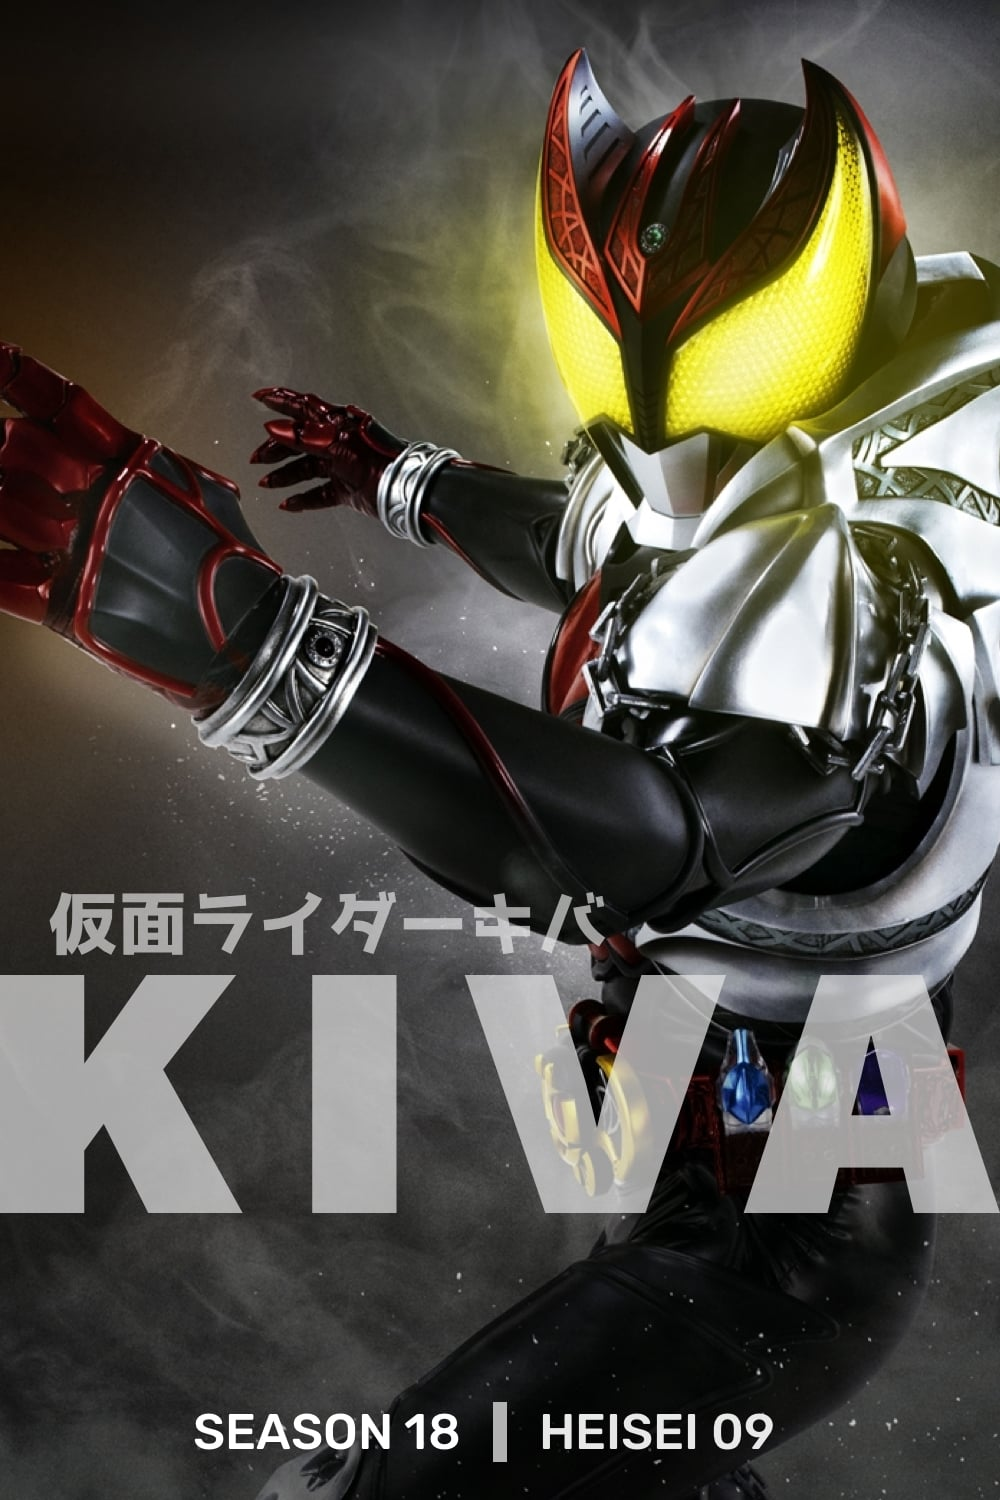 Kamen Rider - Season 21 Episode 35 : Dreams, Brother, Birth's Secret Season 18